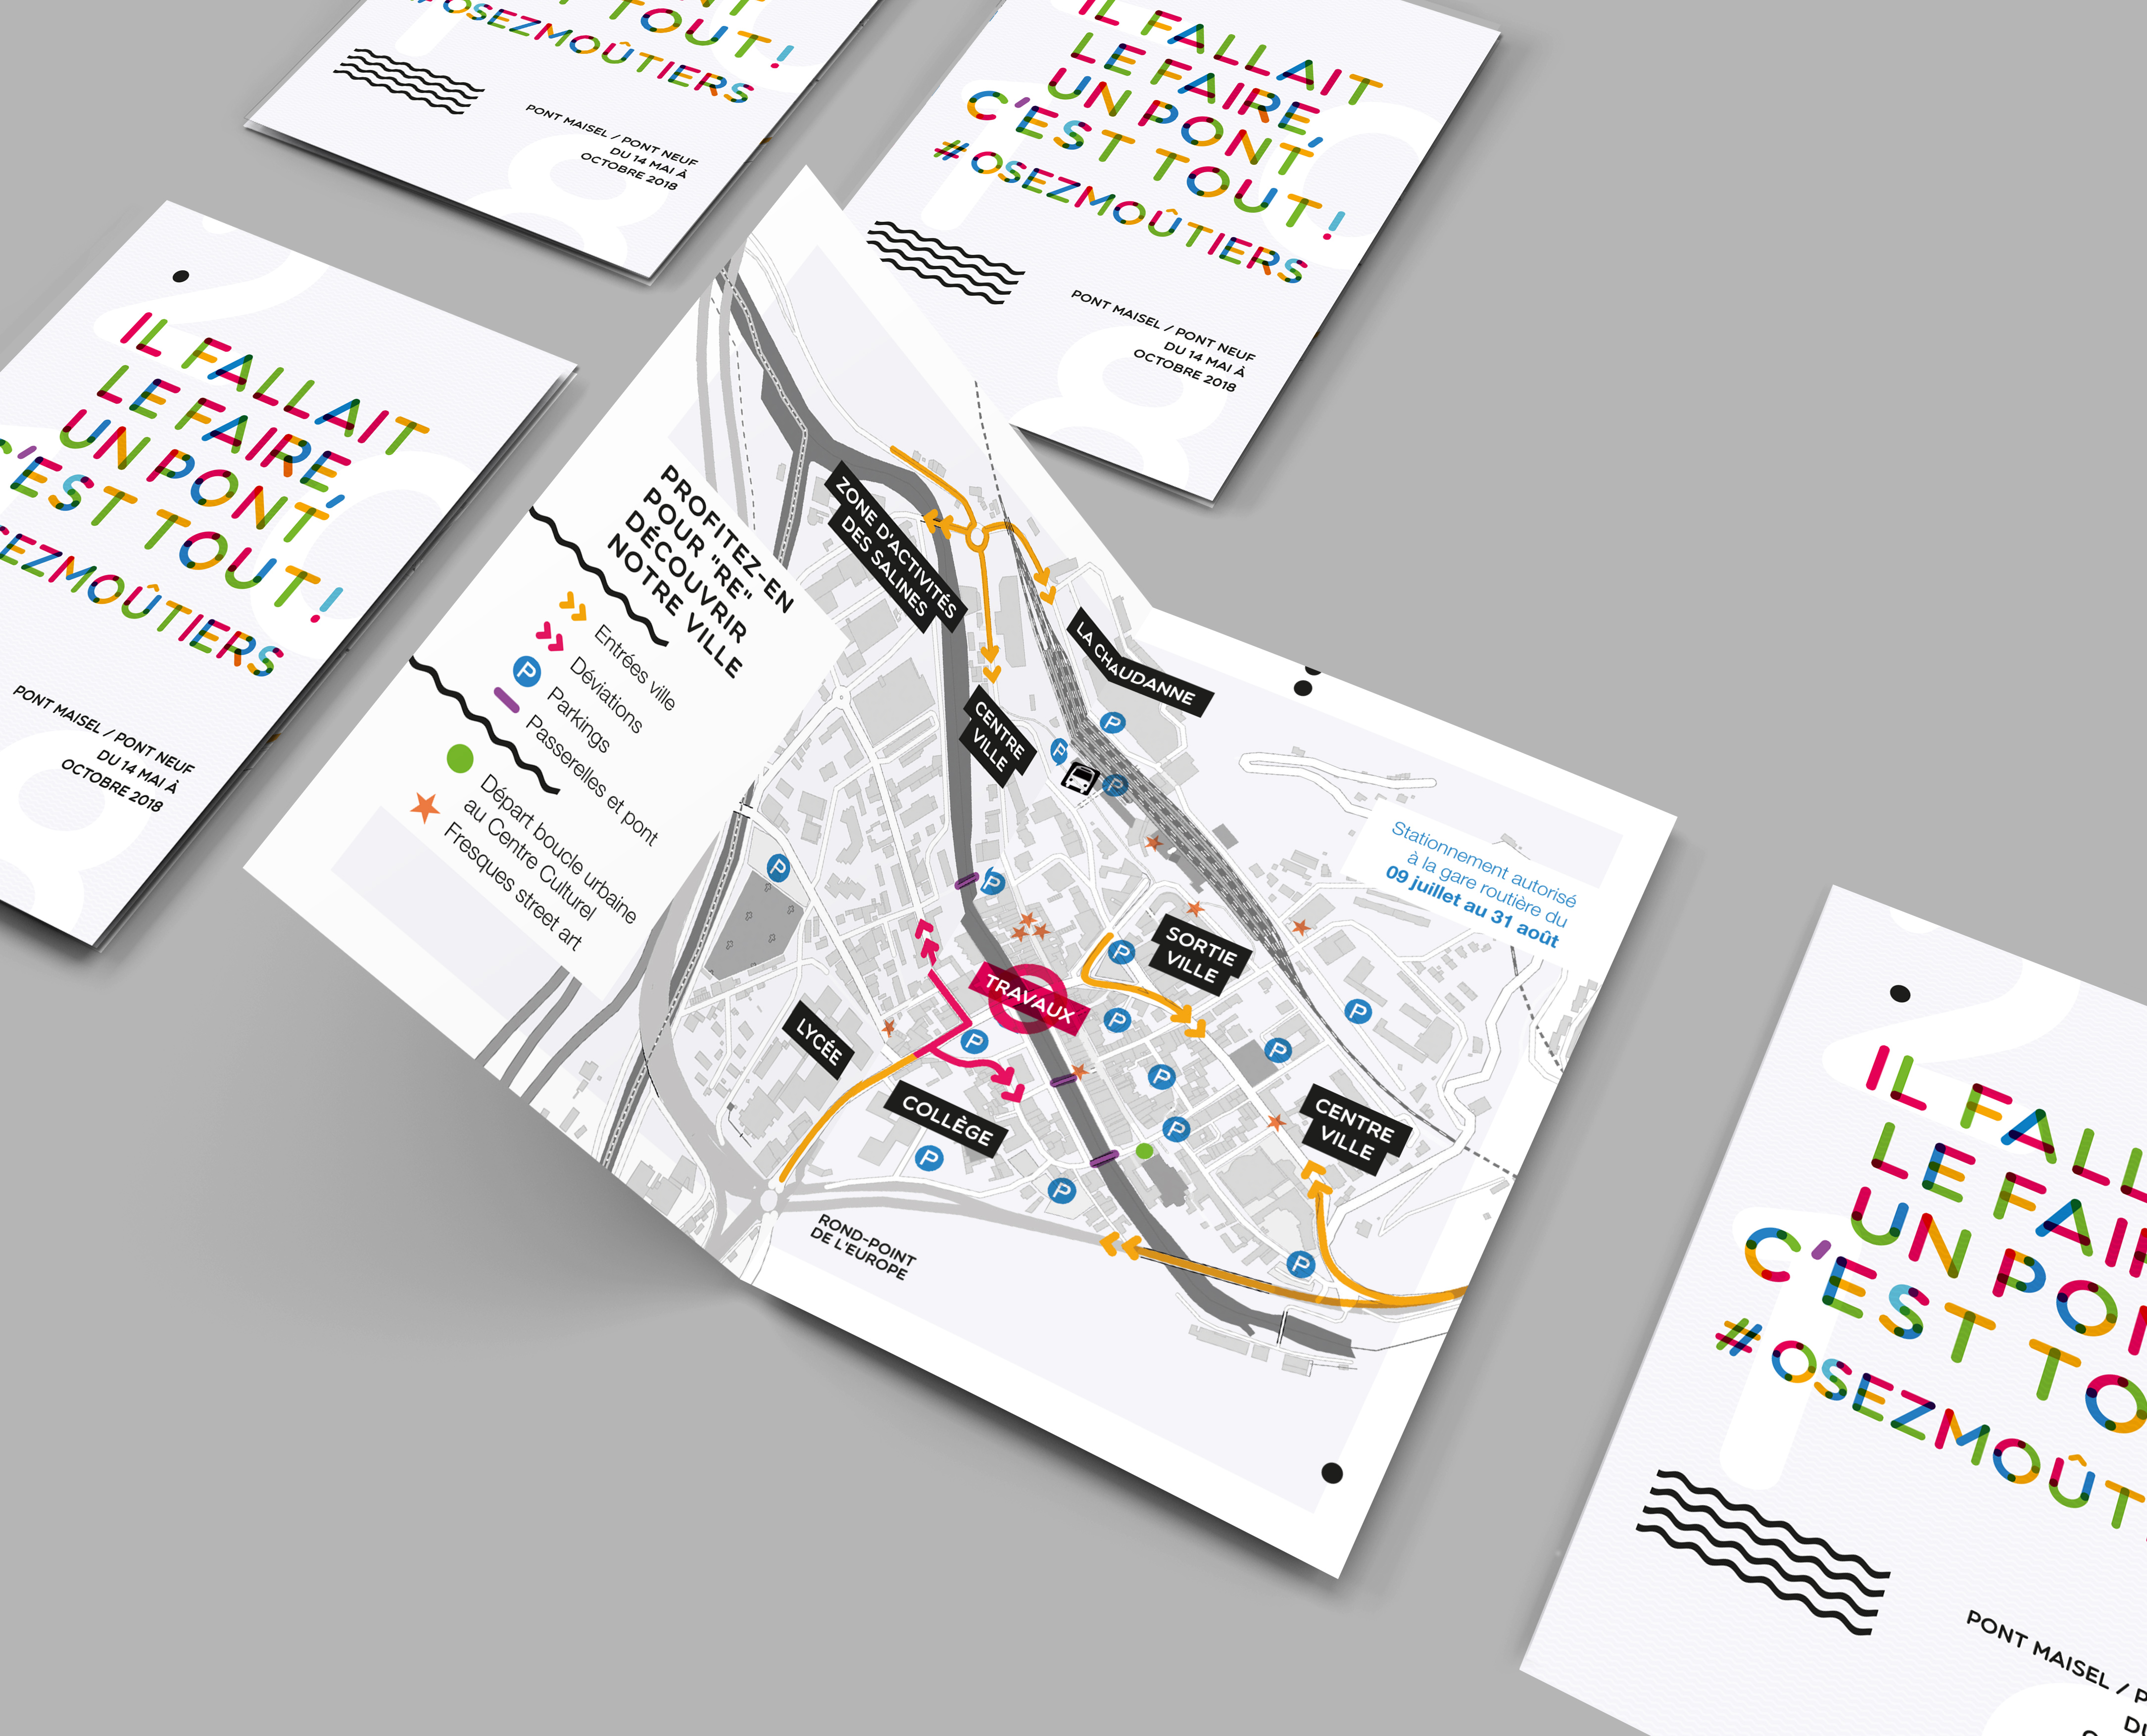 Creative Altitude - Agence Communication - Savoie - site-internet - logo - web - print - Flyers Moutiers